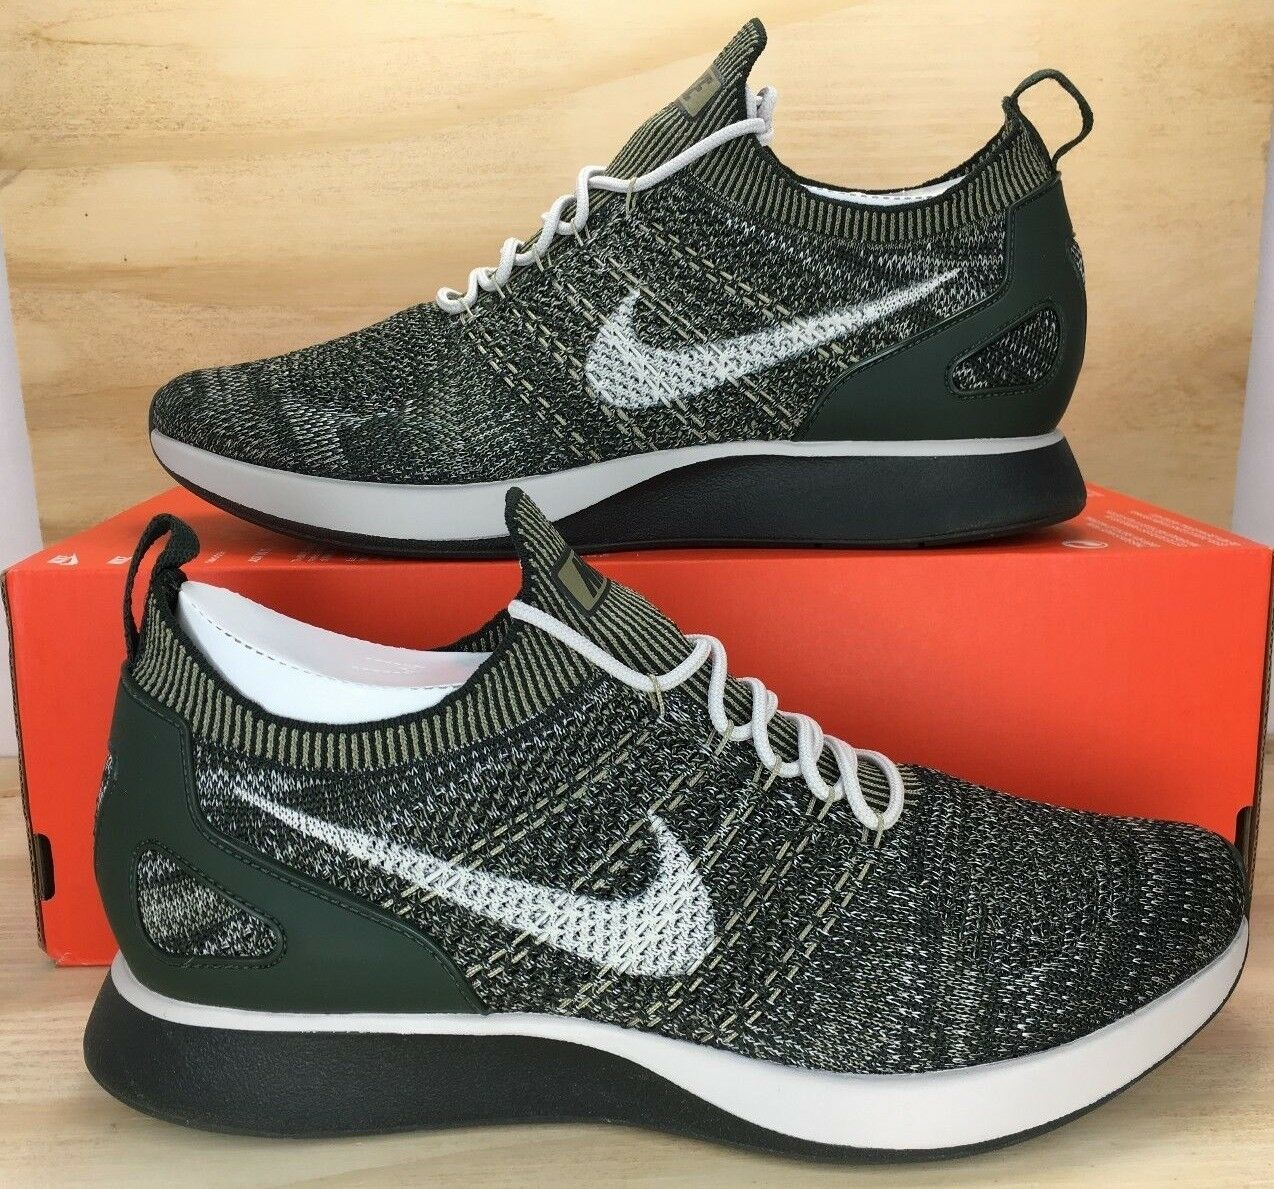 Nike Air Zoom Mariah Flyknit Racer Olive Green 918264 301 Men Size